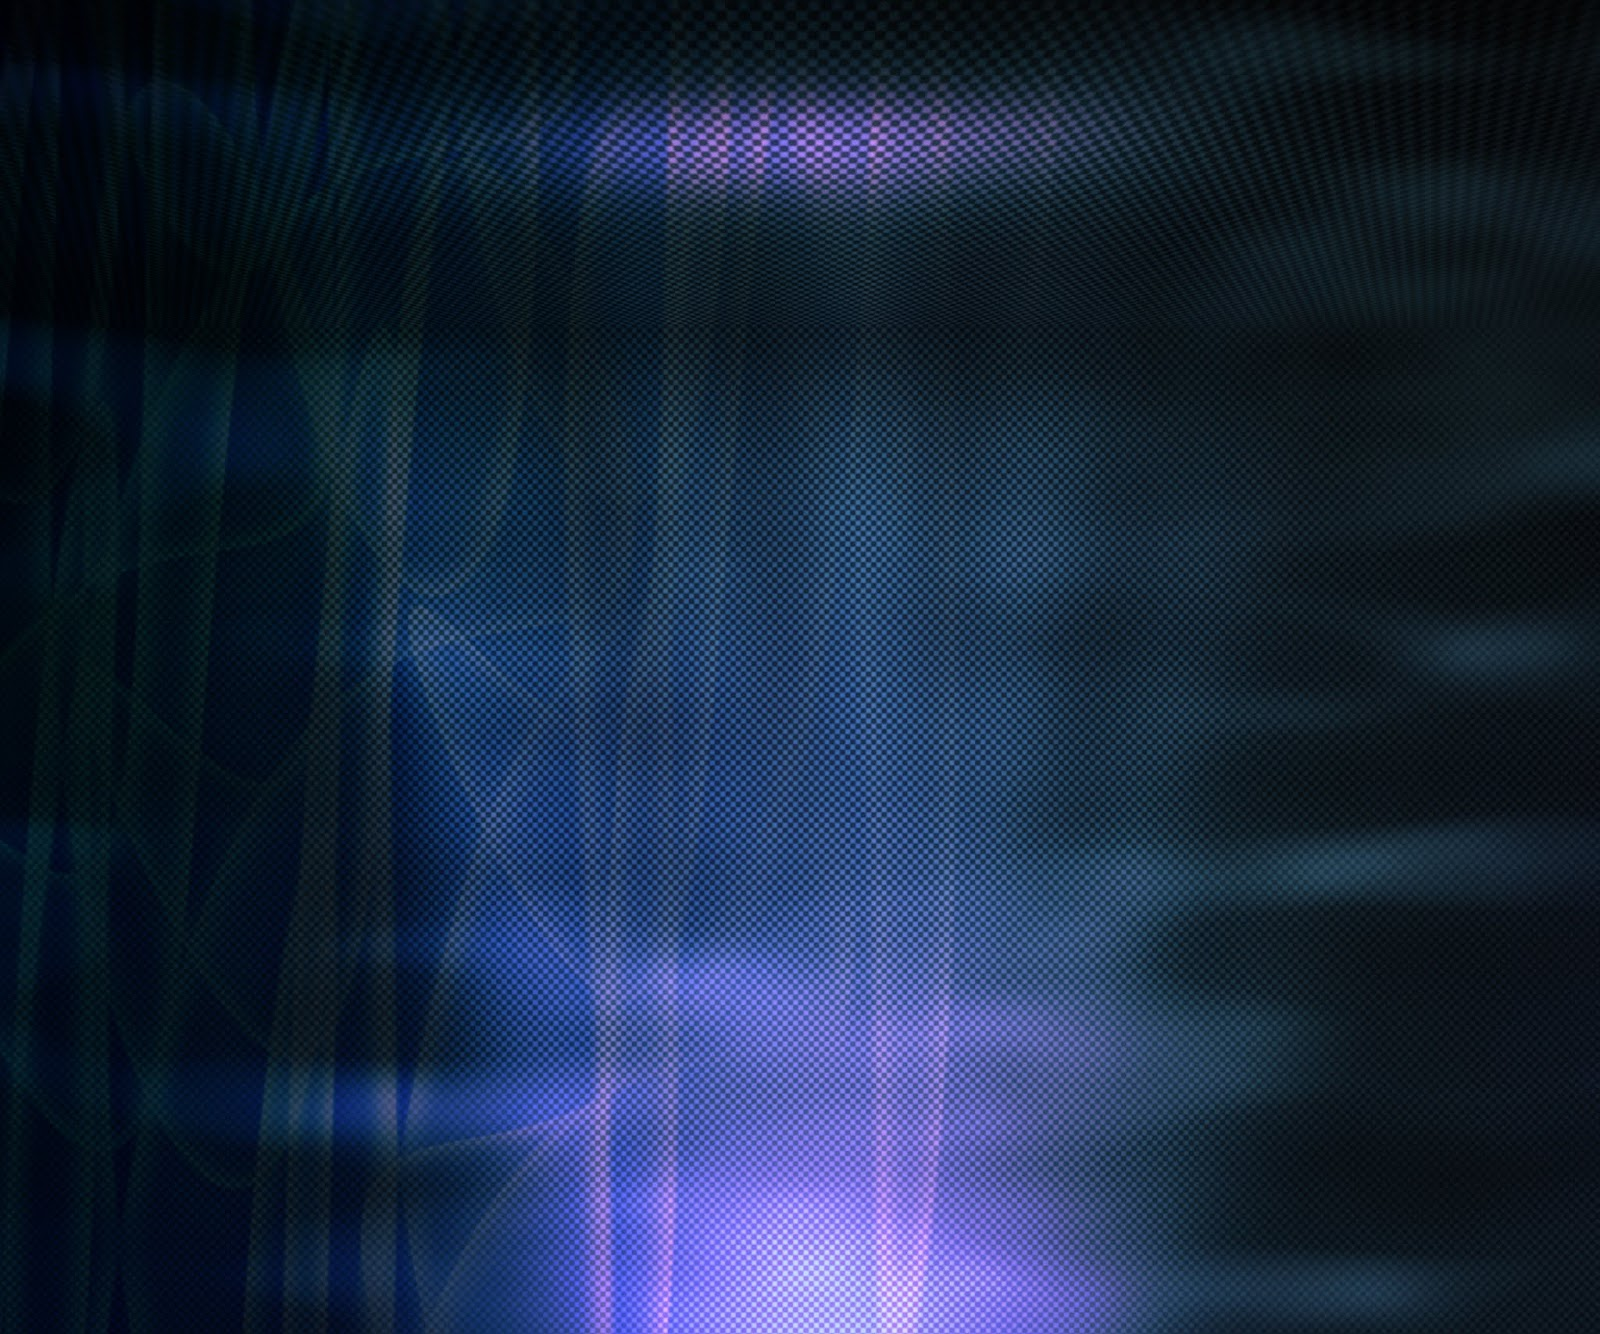 Blue HD abstract background